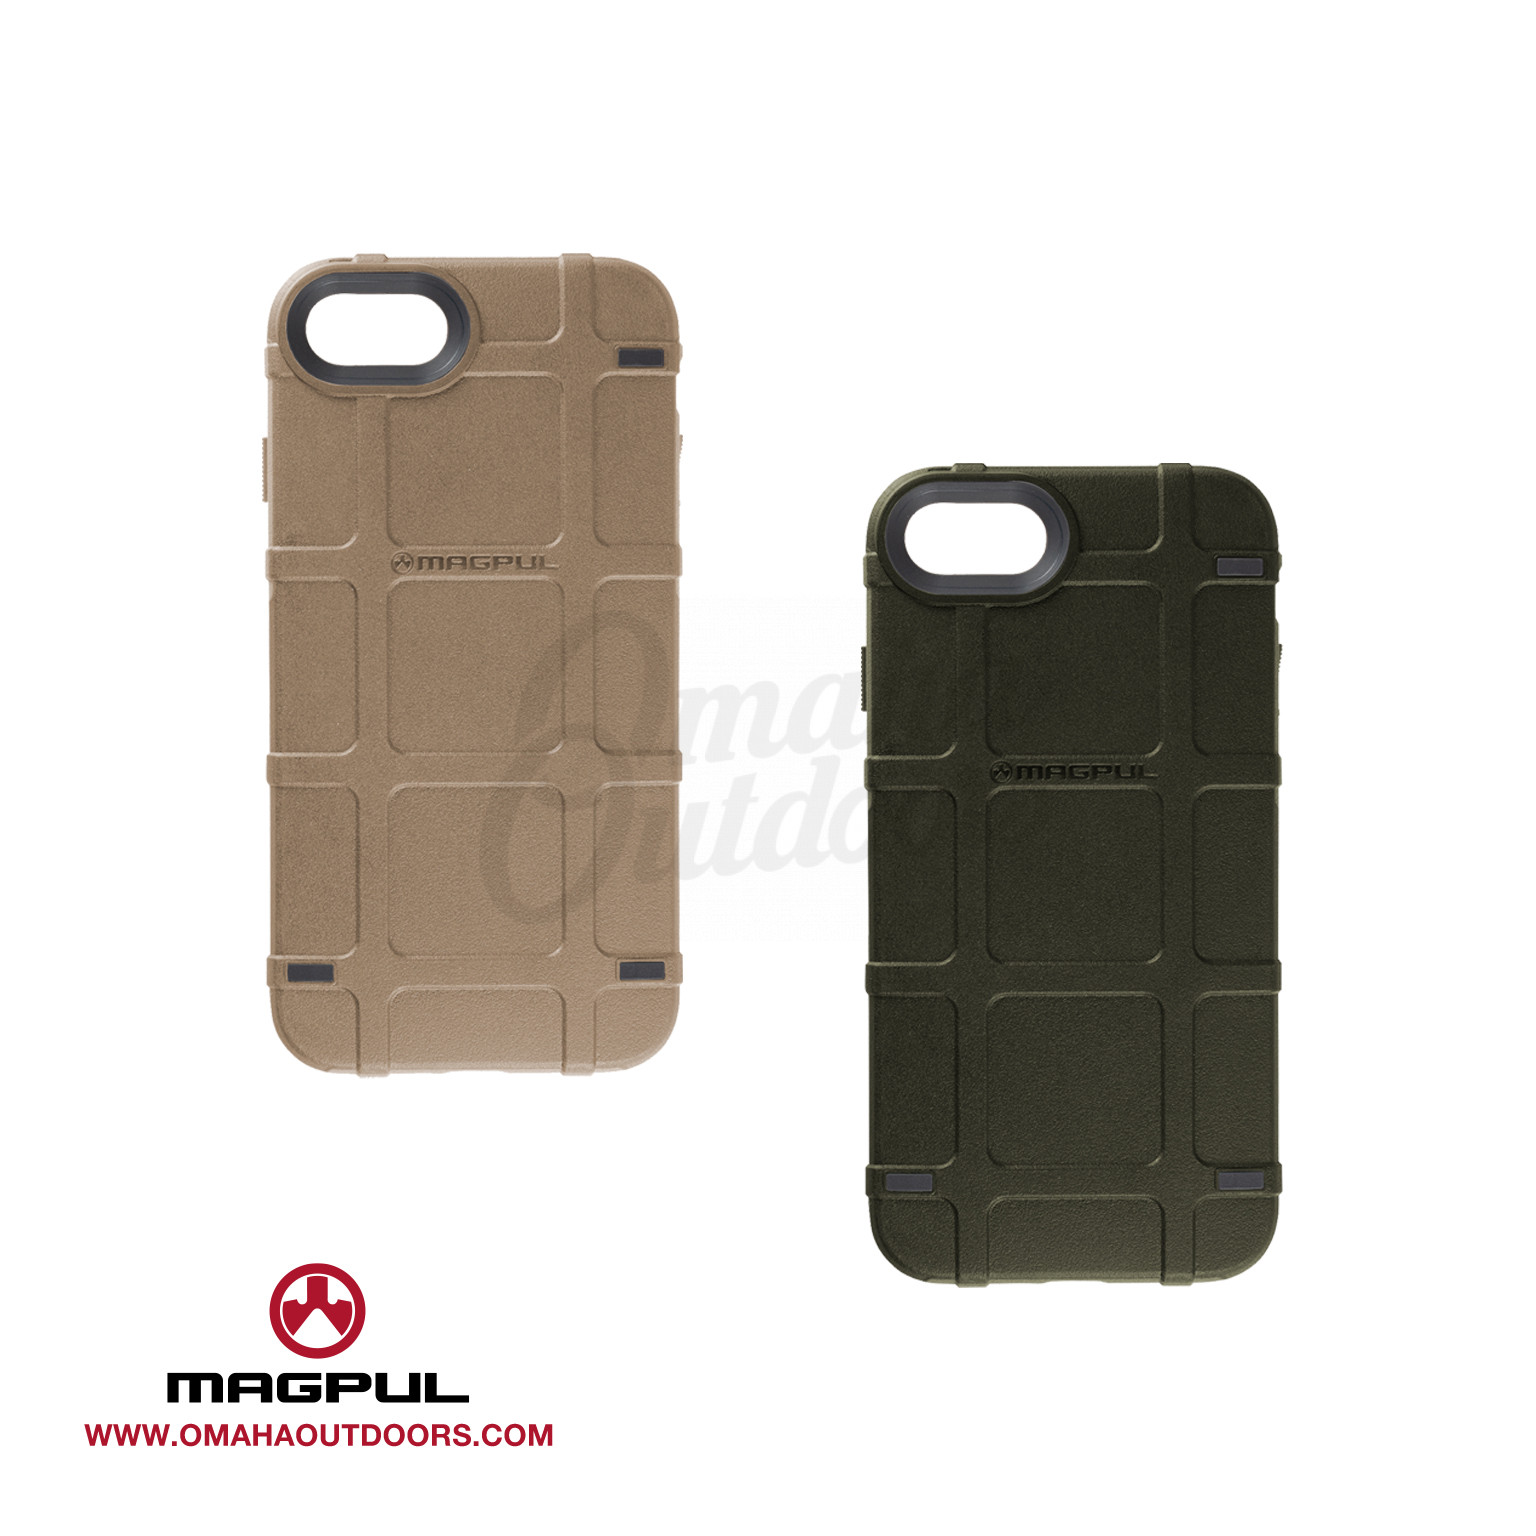 MAGPUL IPHONE COVER - Review: MagPul iPhone 5 Field Case